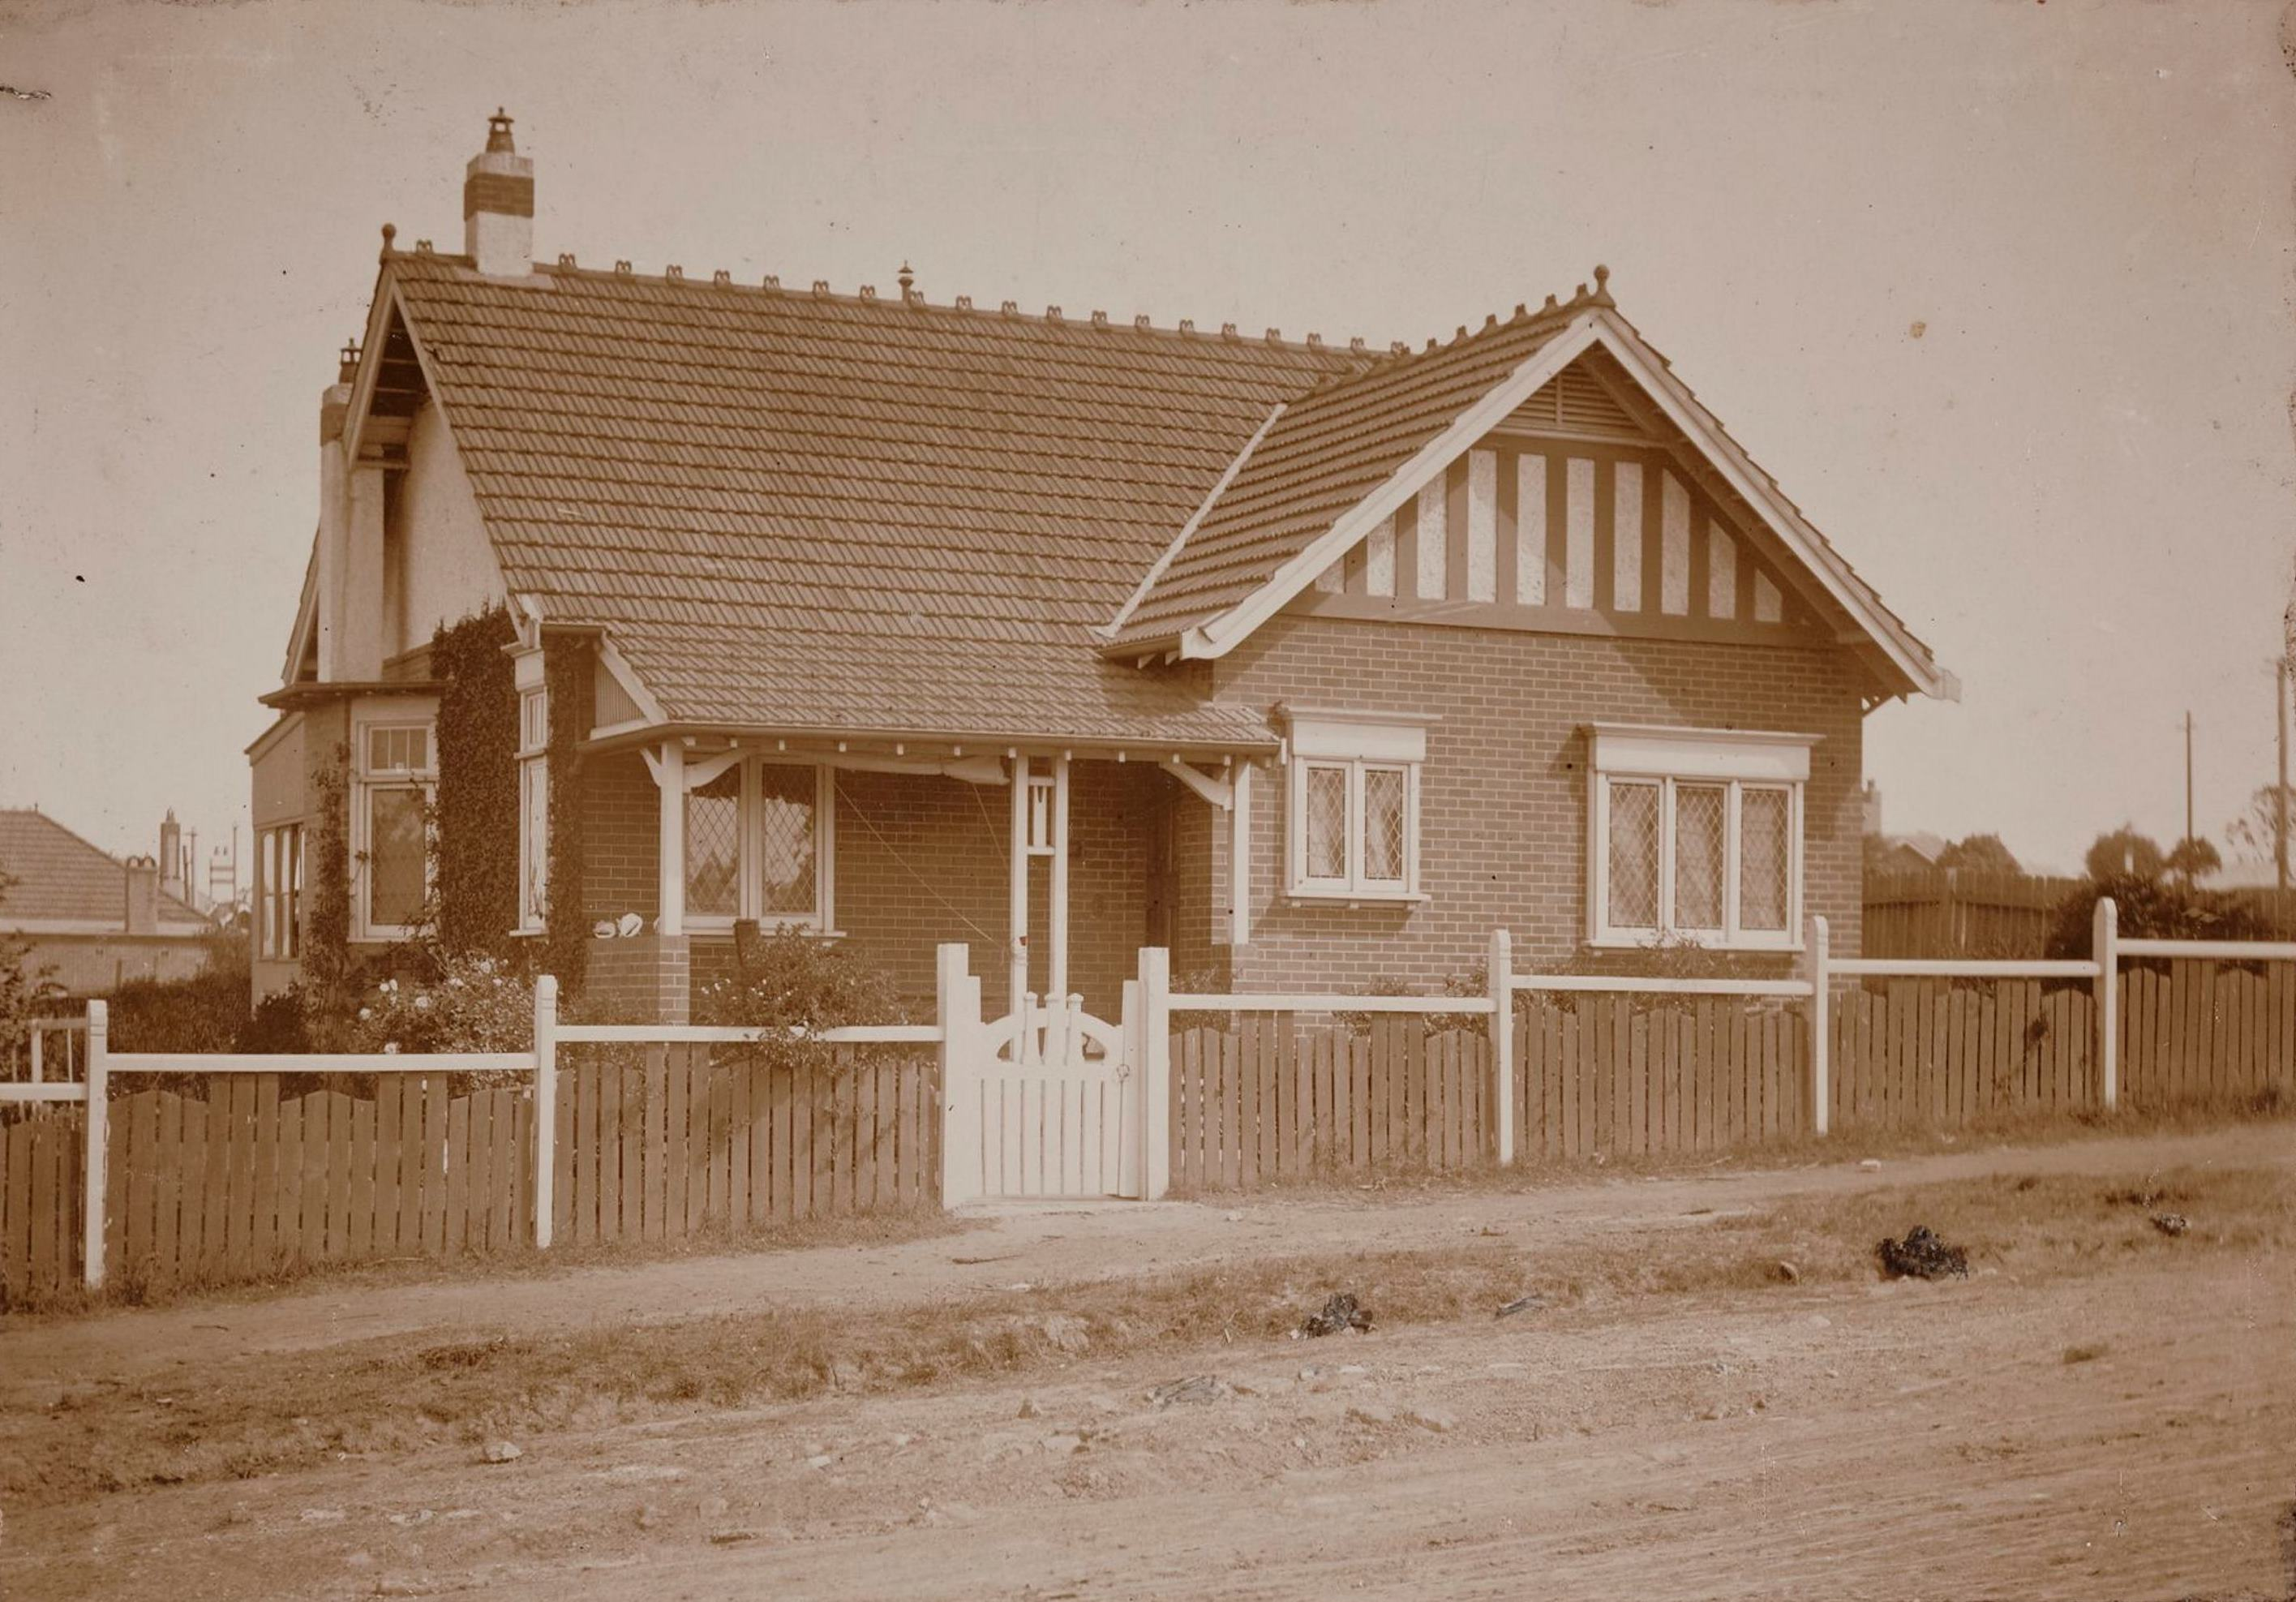 Lynwood, 171 Alt Street, Haberfield, N.S.W. around 1913 / photographer unknown